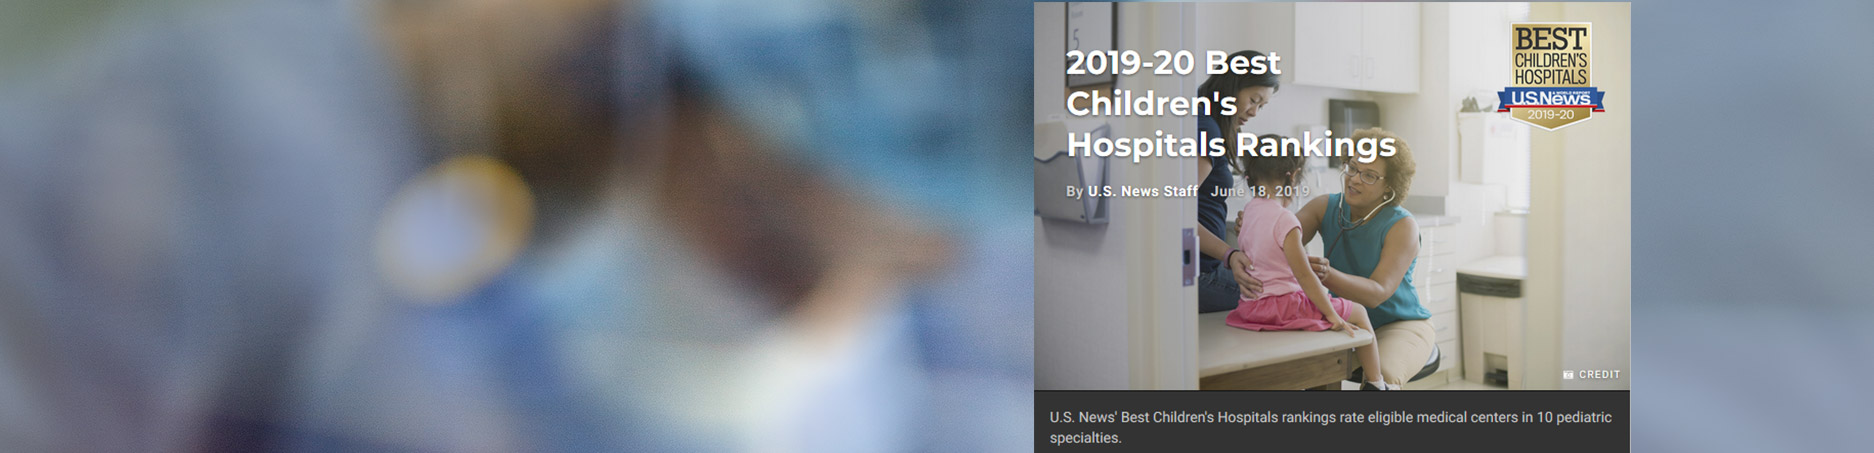 children's hospital ranking banner image